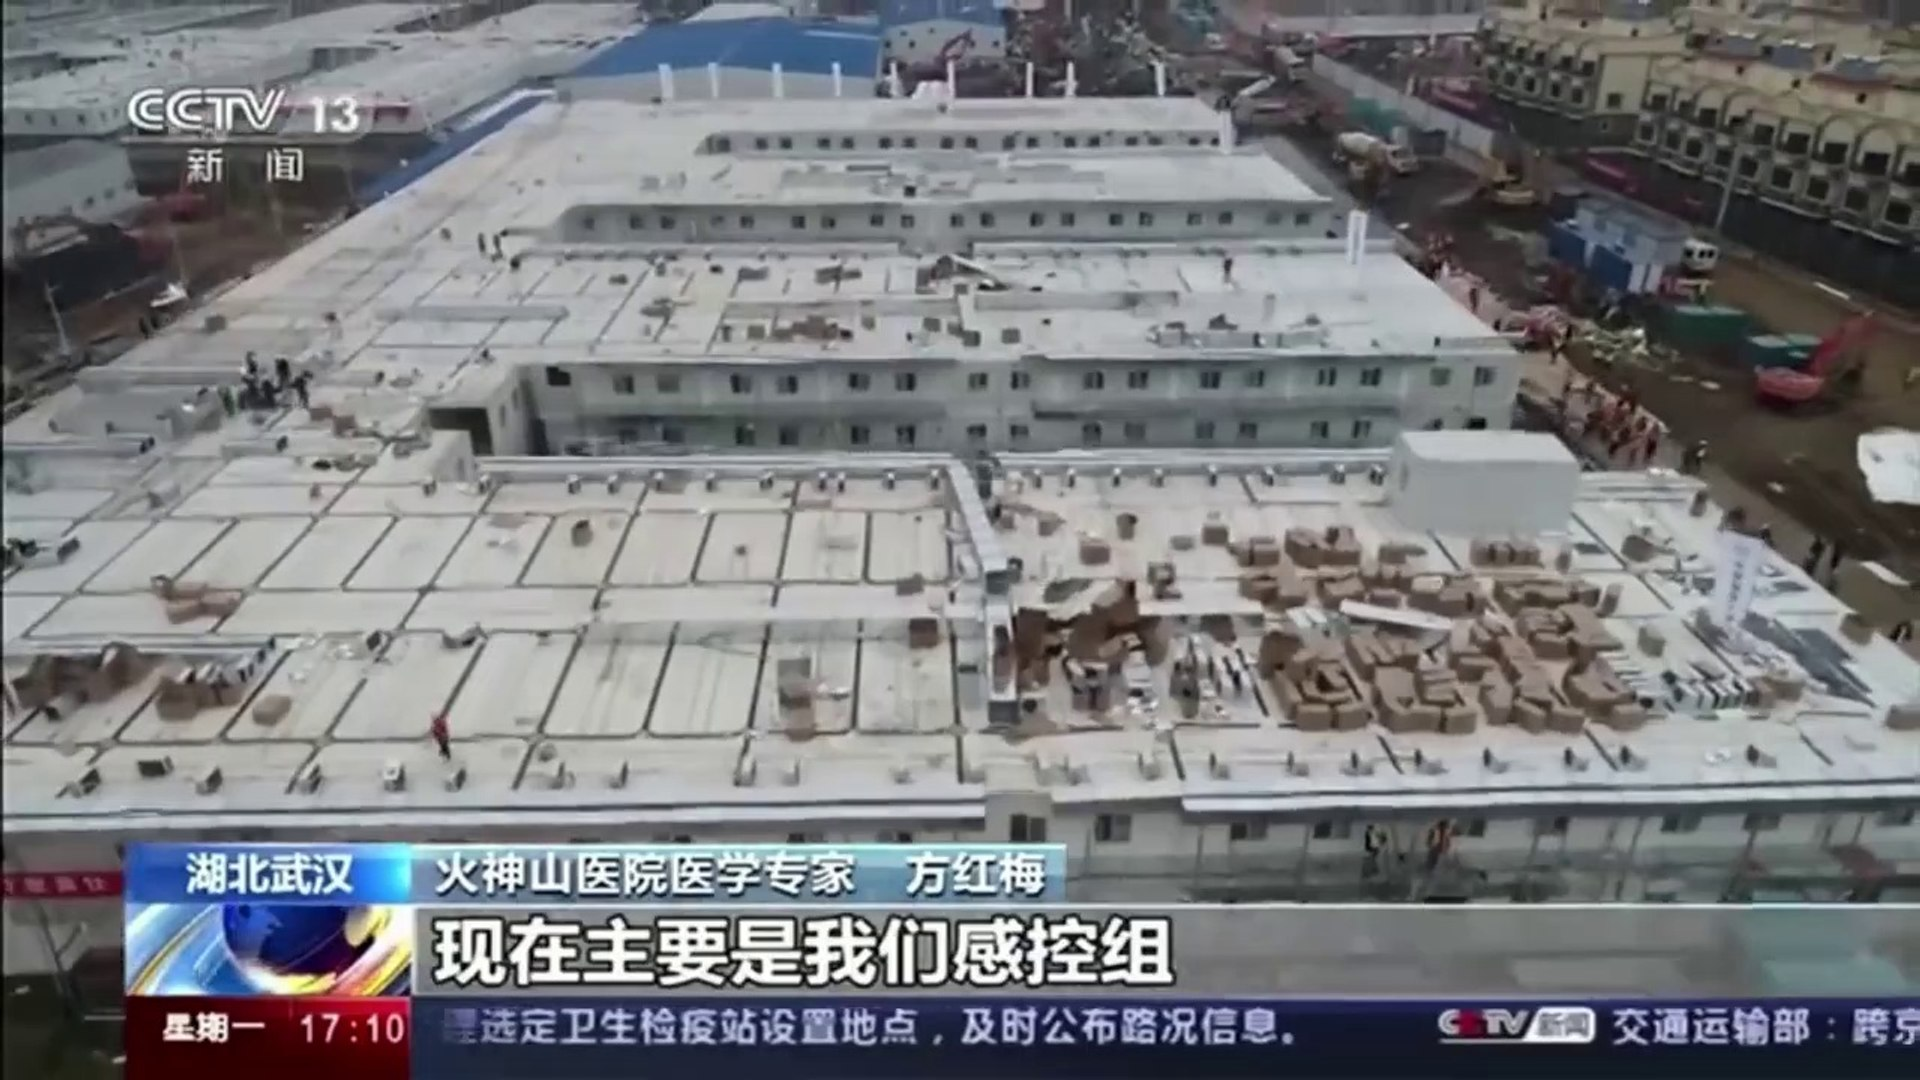 Coronavirus- China opens new hospital, asks for donations of medical supplies // China build a new h